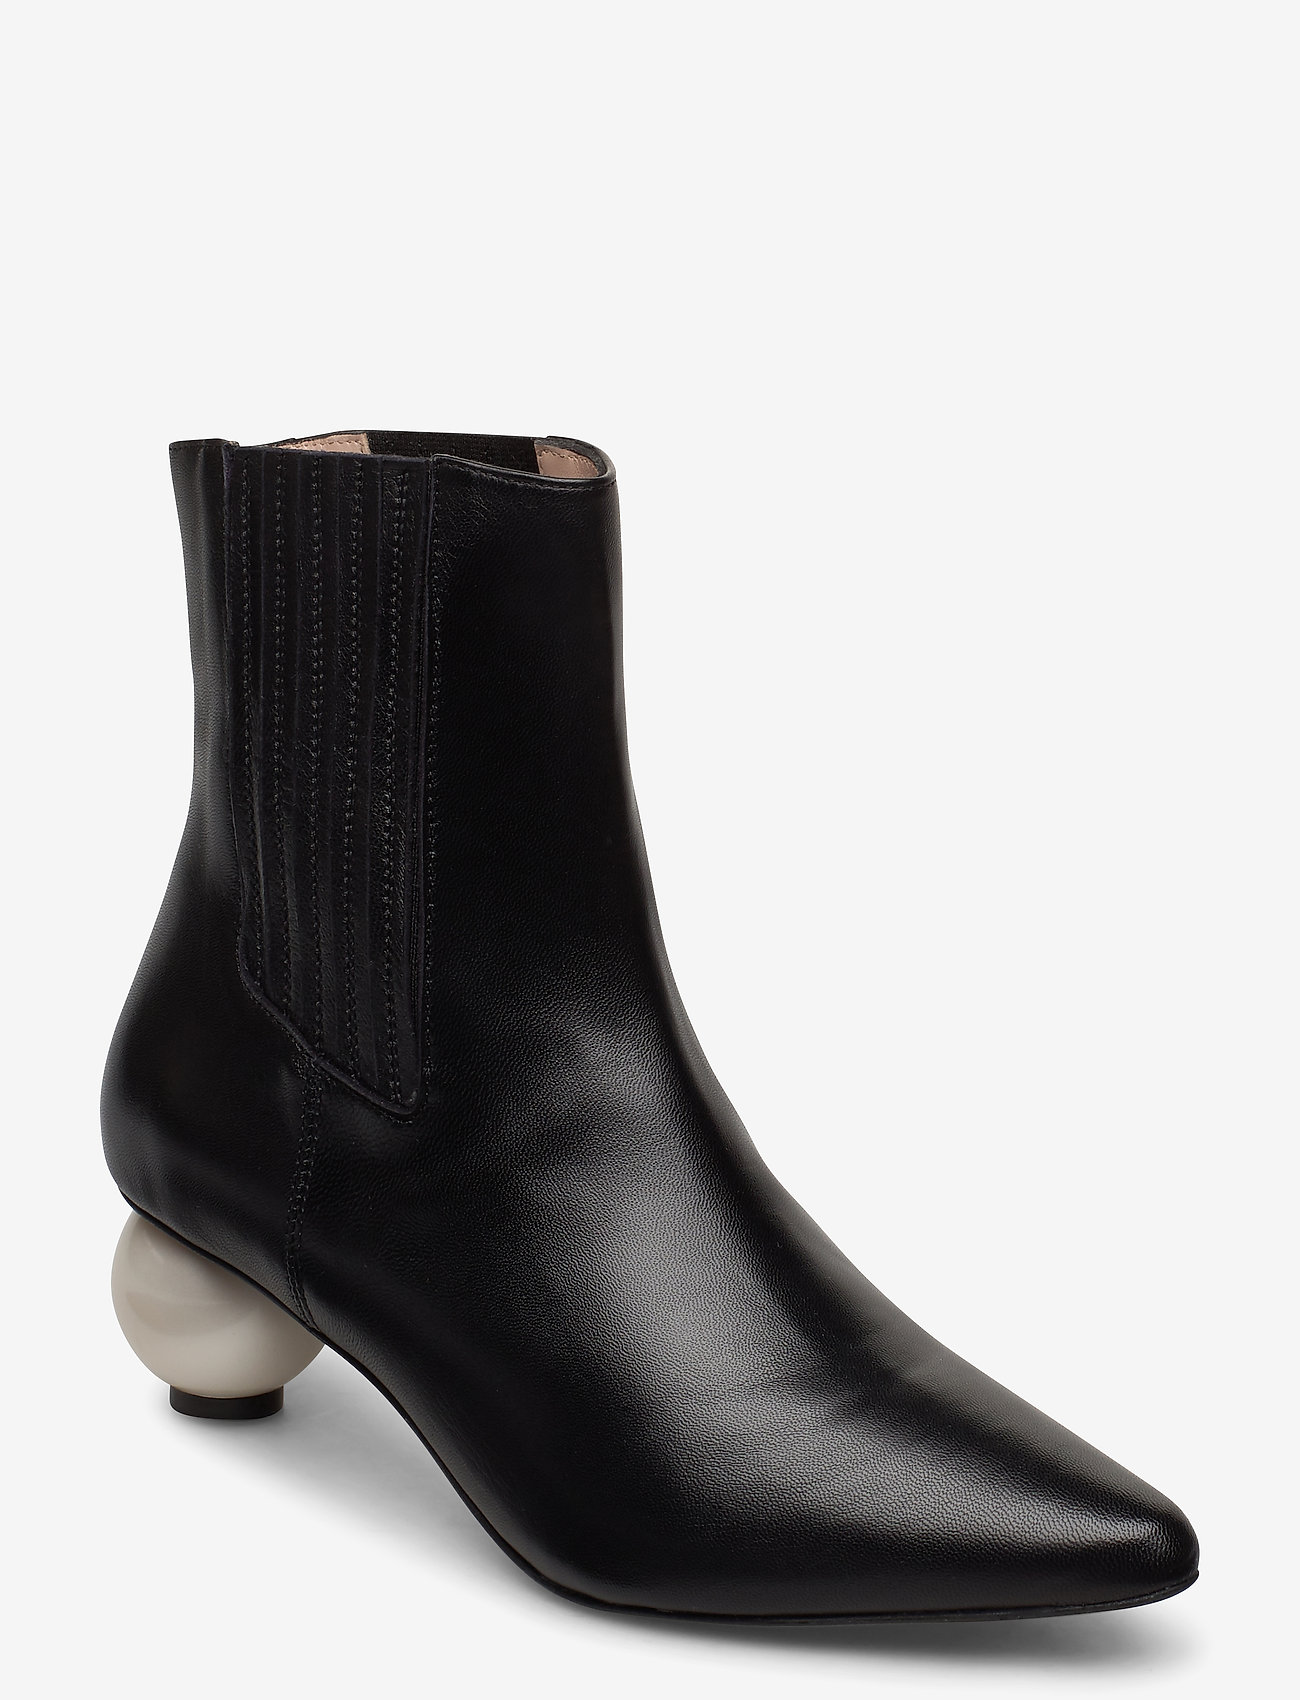 black boots with pearl heel